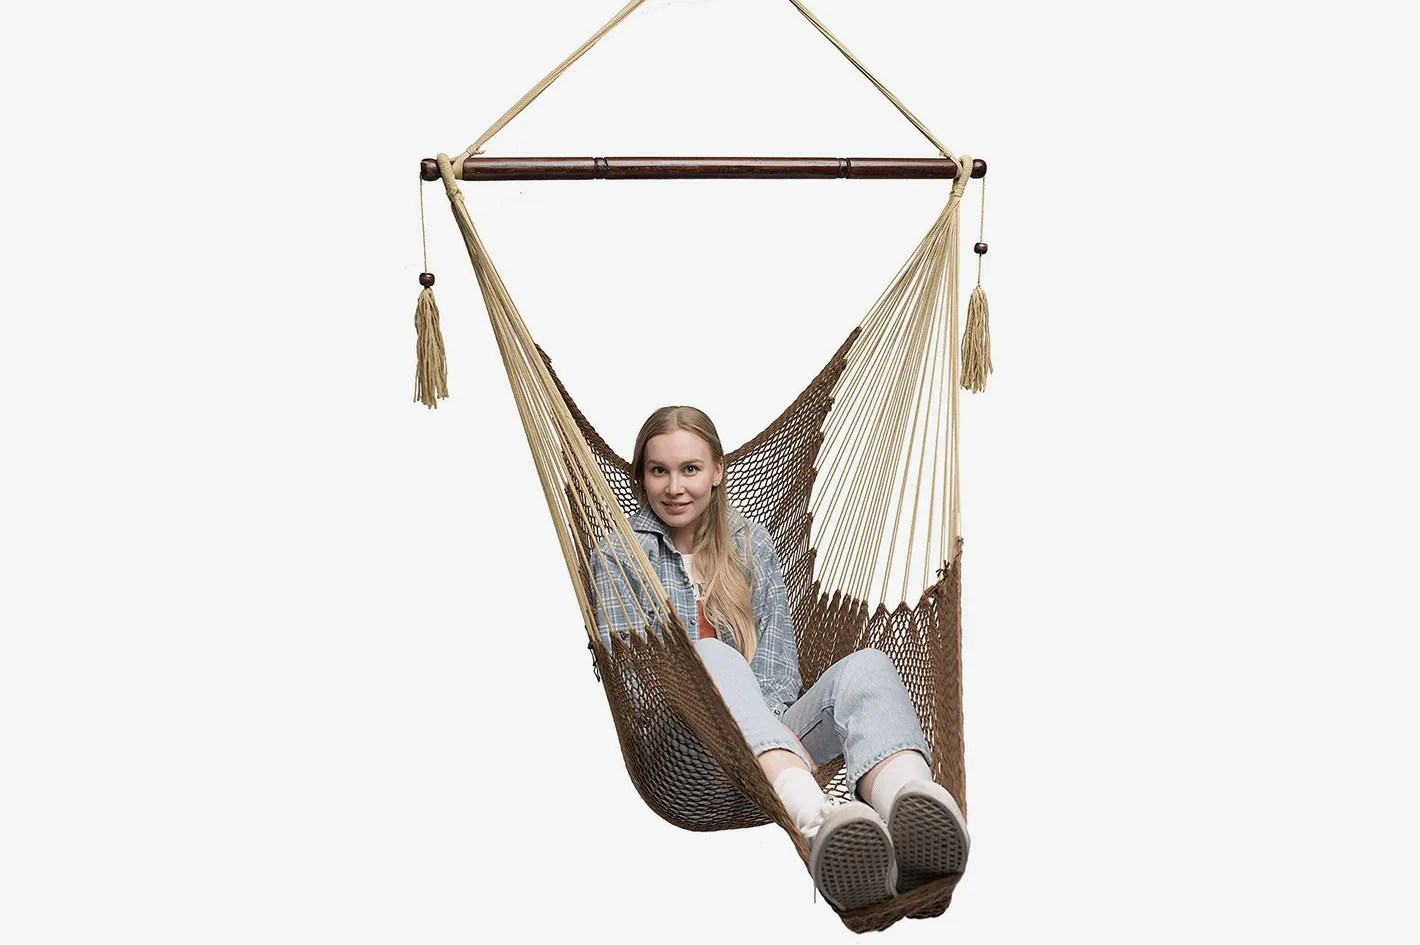 swing chair pics cover hire high wycombe the 13 best hammock chairs 2018 krazy outdoors mayan